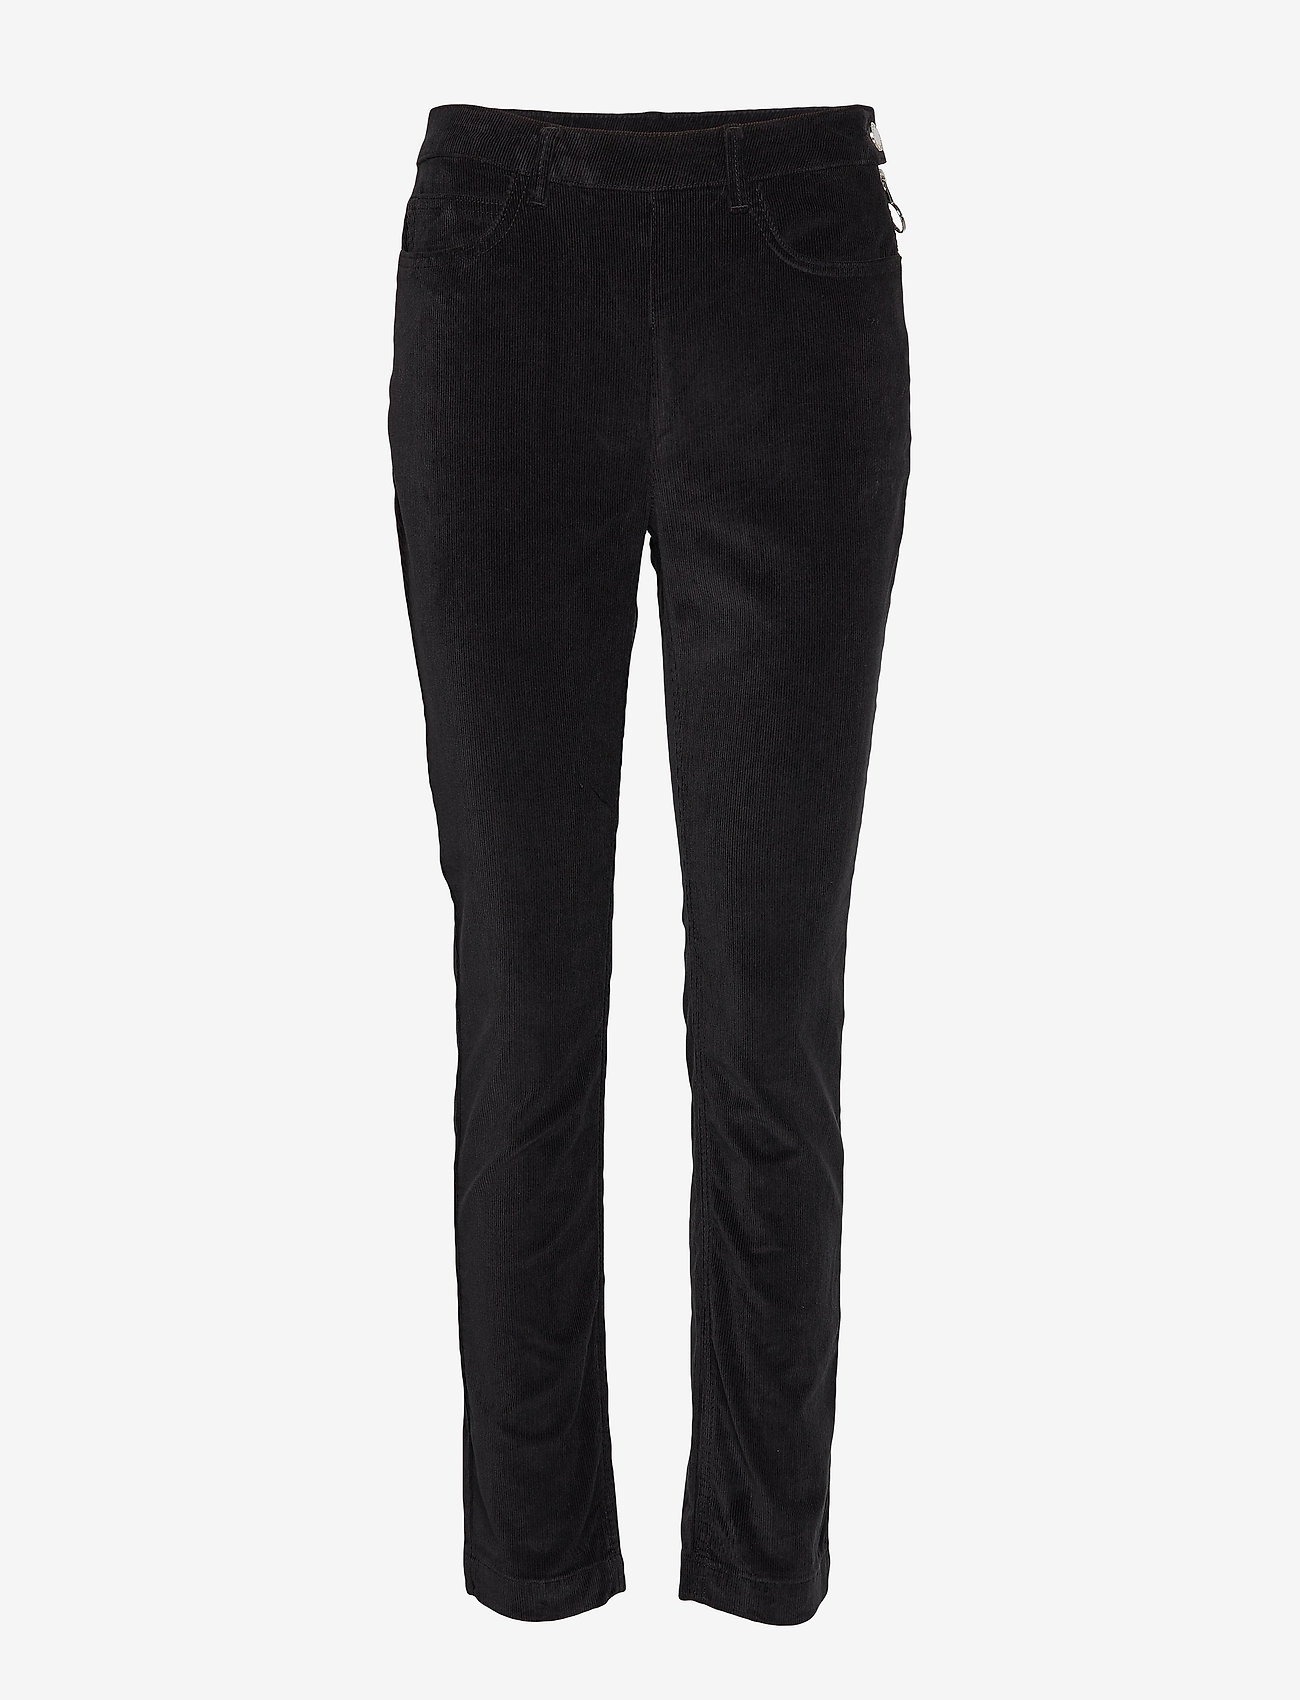 2NDDAY - 2ND Jeanett Cord - straight leg trousers - black - 0